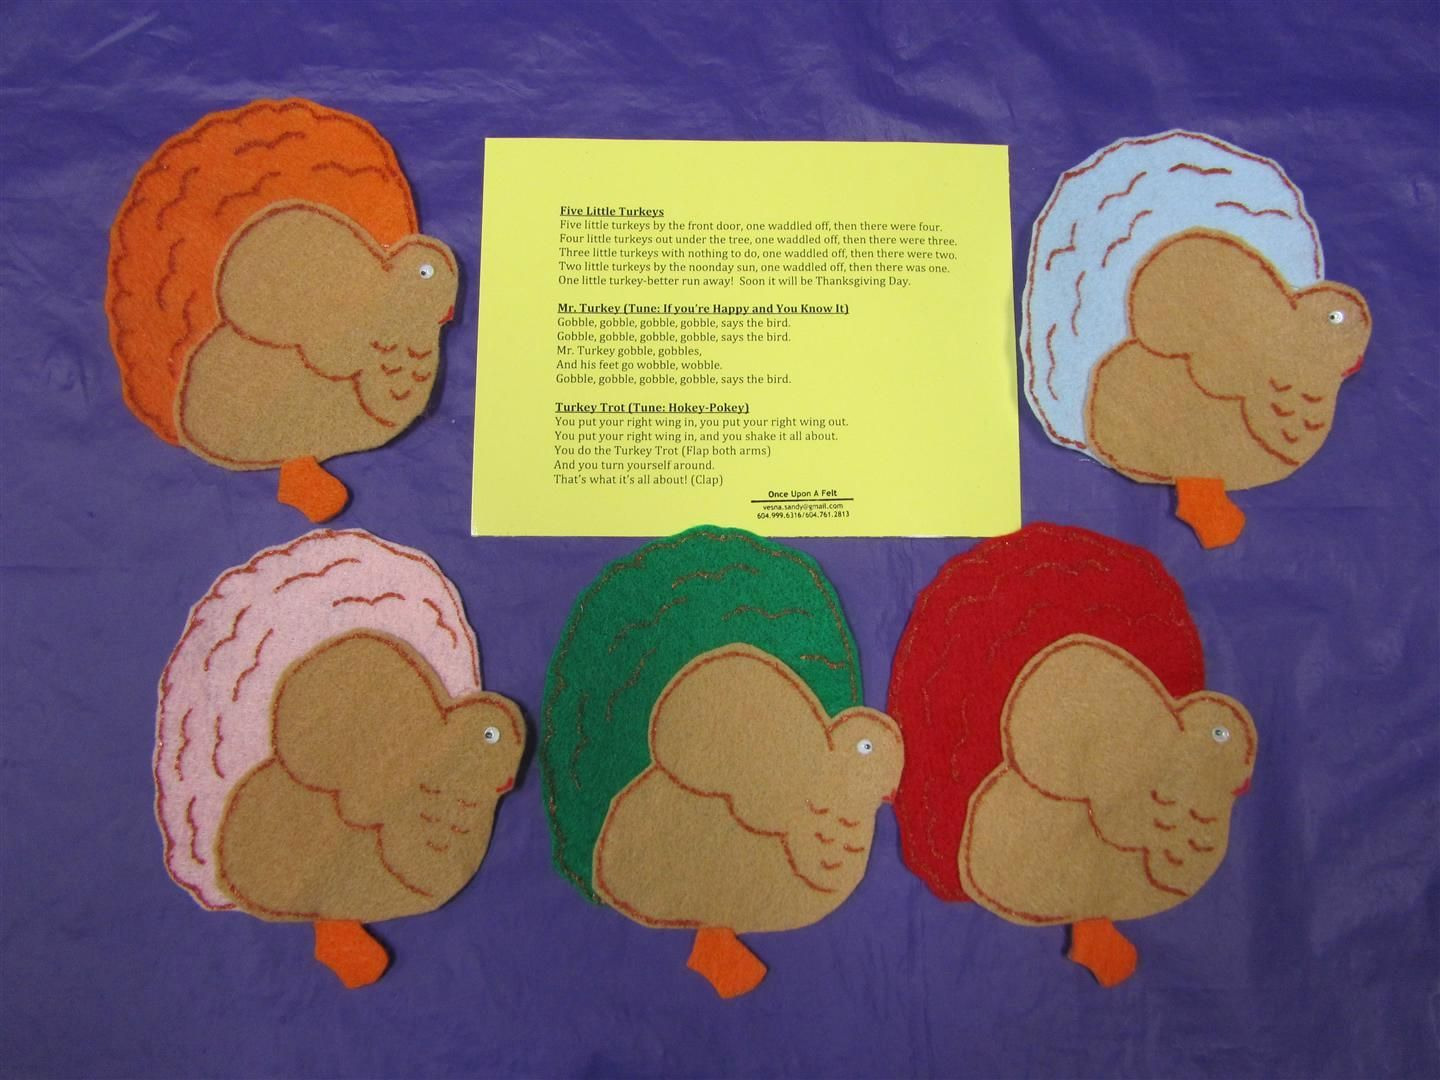 Five Little Turkeys Felt Book Story